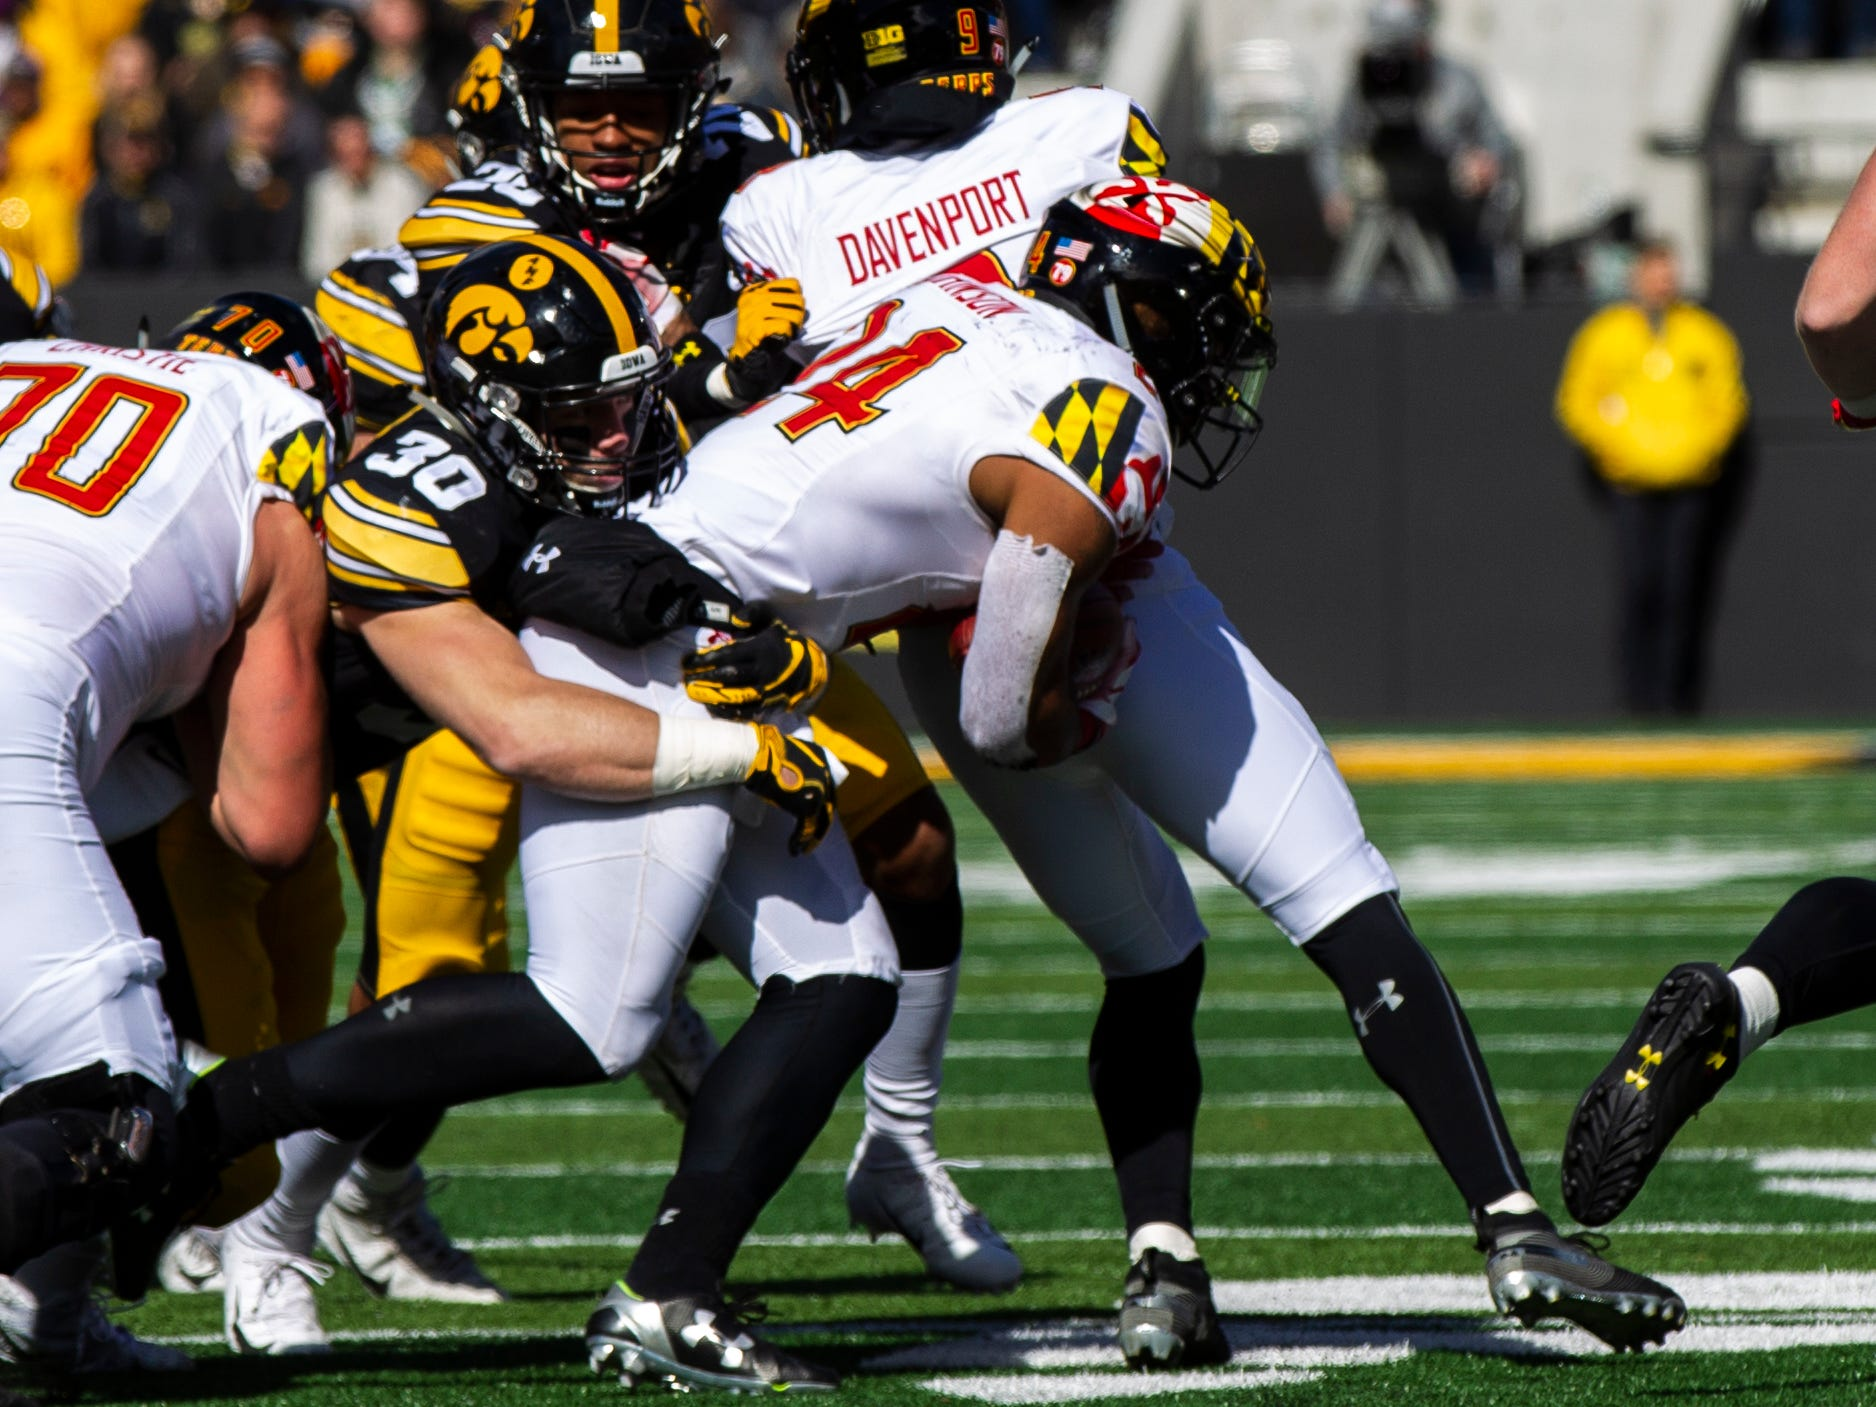 Iowa defensive back Jake Gervase (30) tackles Maryland wide receiver Tahj Capehart (14) during an NCAA Big Ten conference football game on Saturday, Oct. 20, 2018, at Kinnick Stadium in Iowa City.